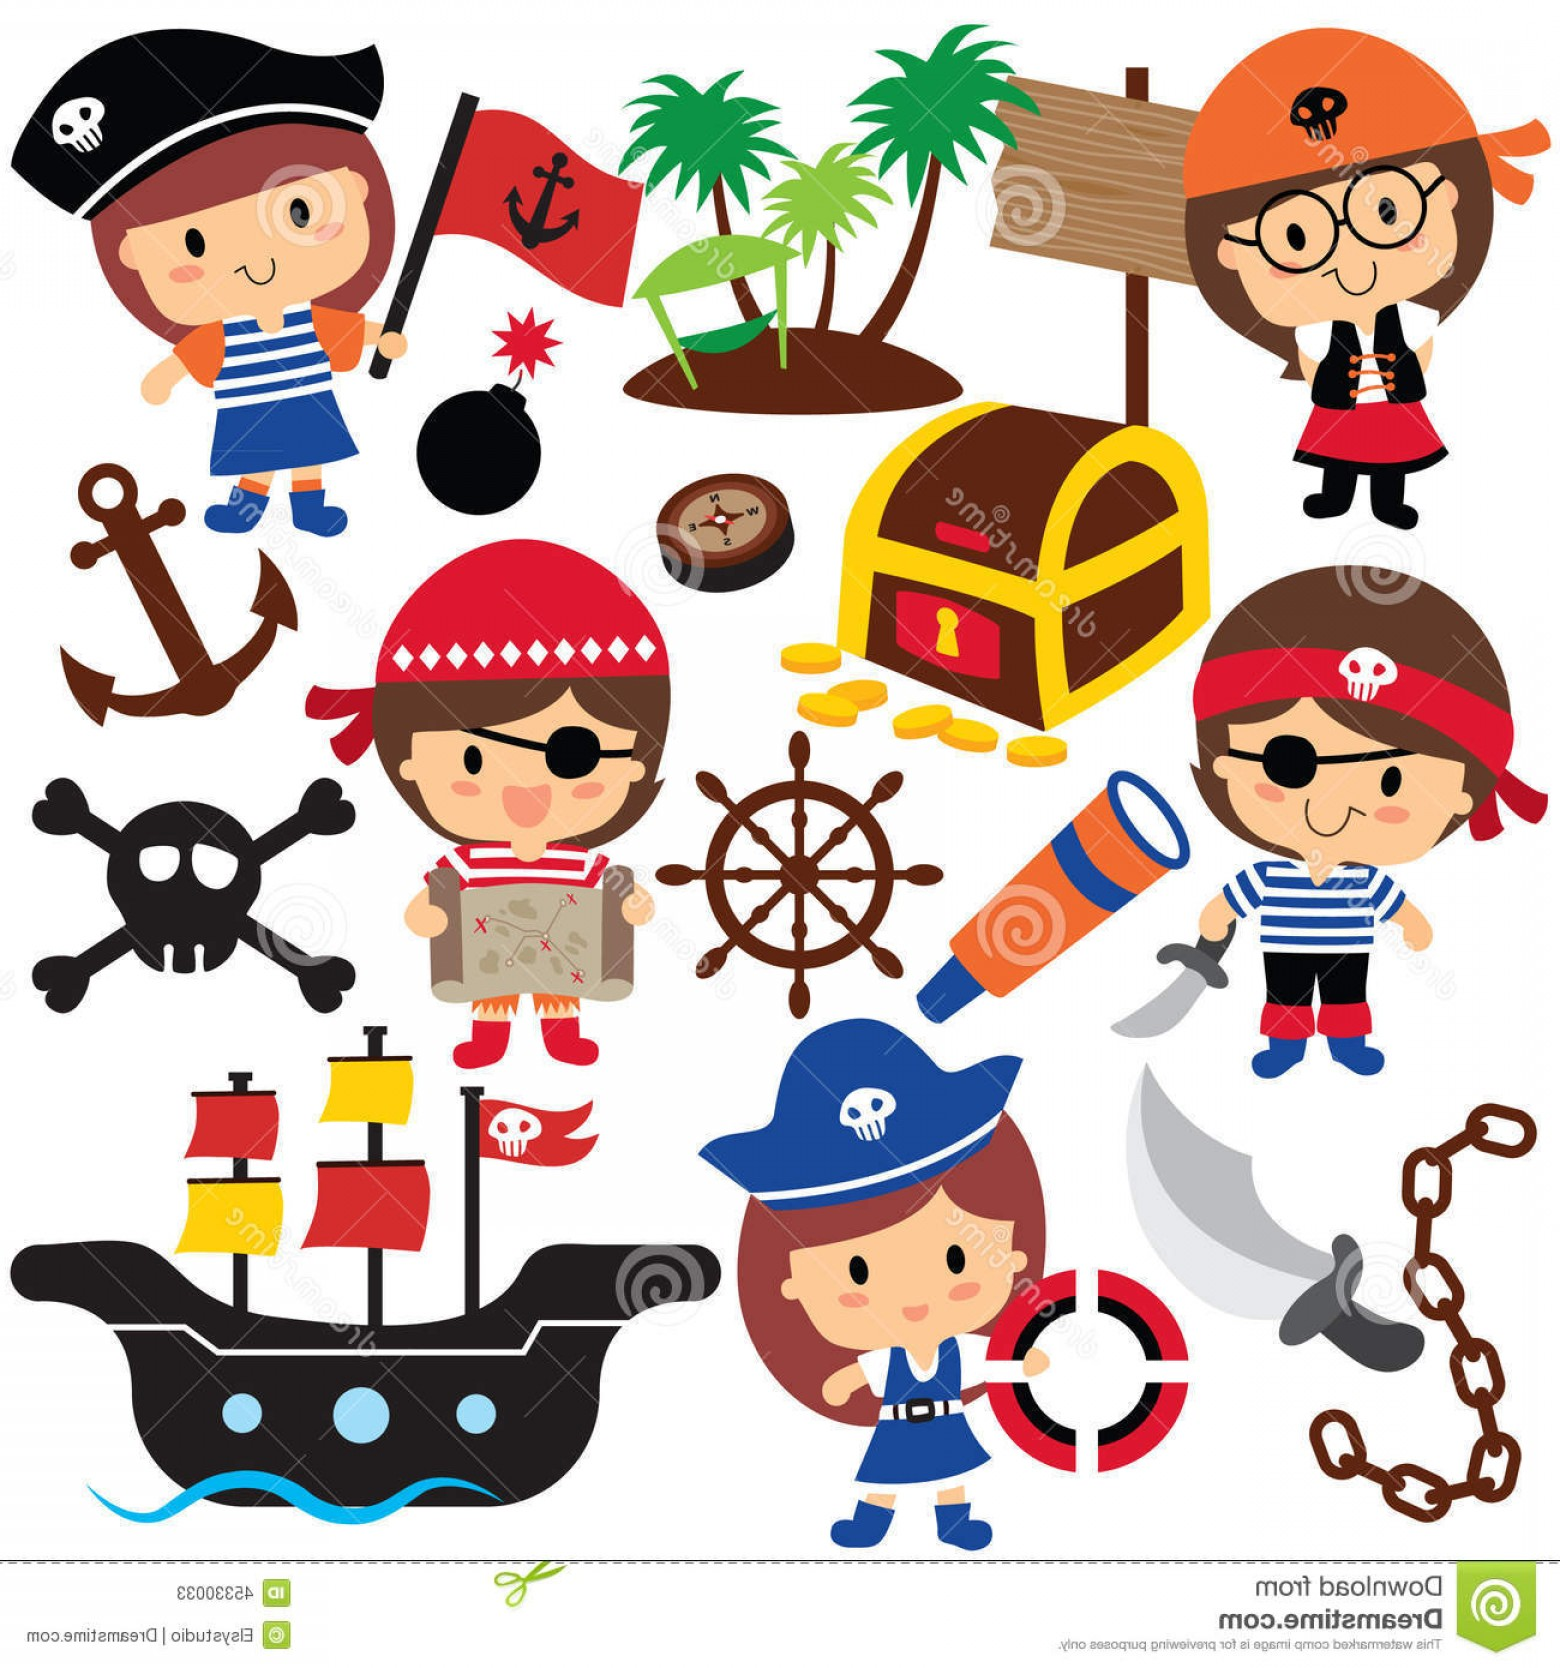 Cartoon Pirate Vector Art: Stock Illustration Pirates Kids Clip Art Vector File Can Be Scaled To Any Sizes Losing Resolution Image